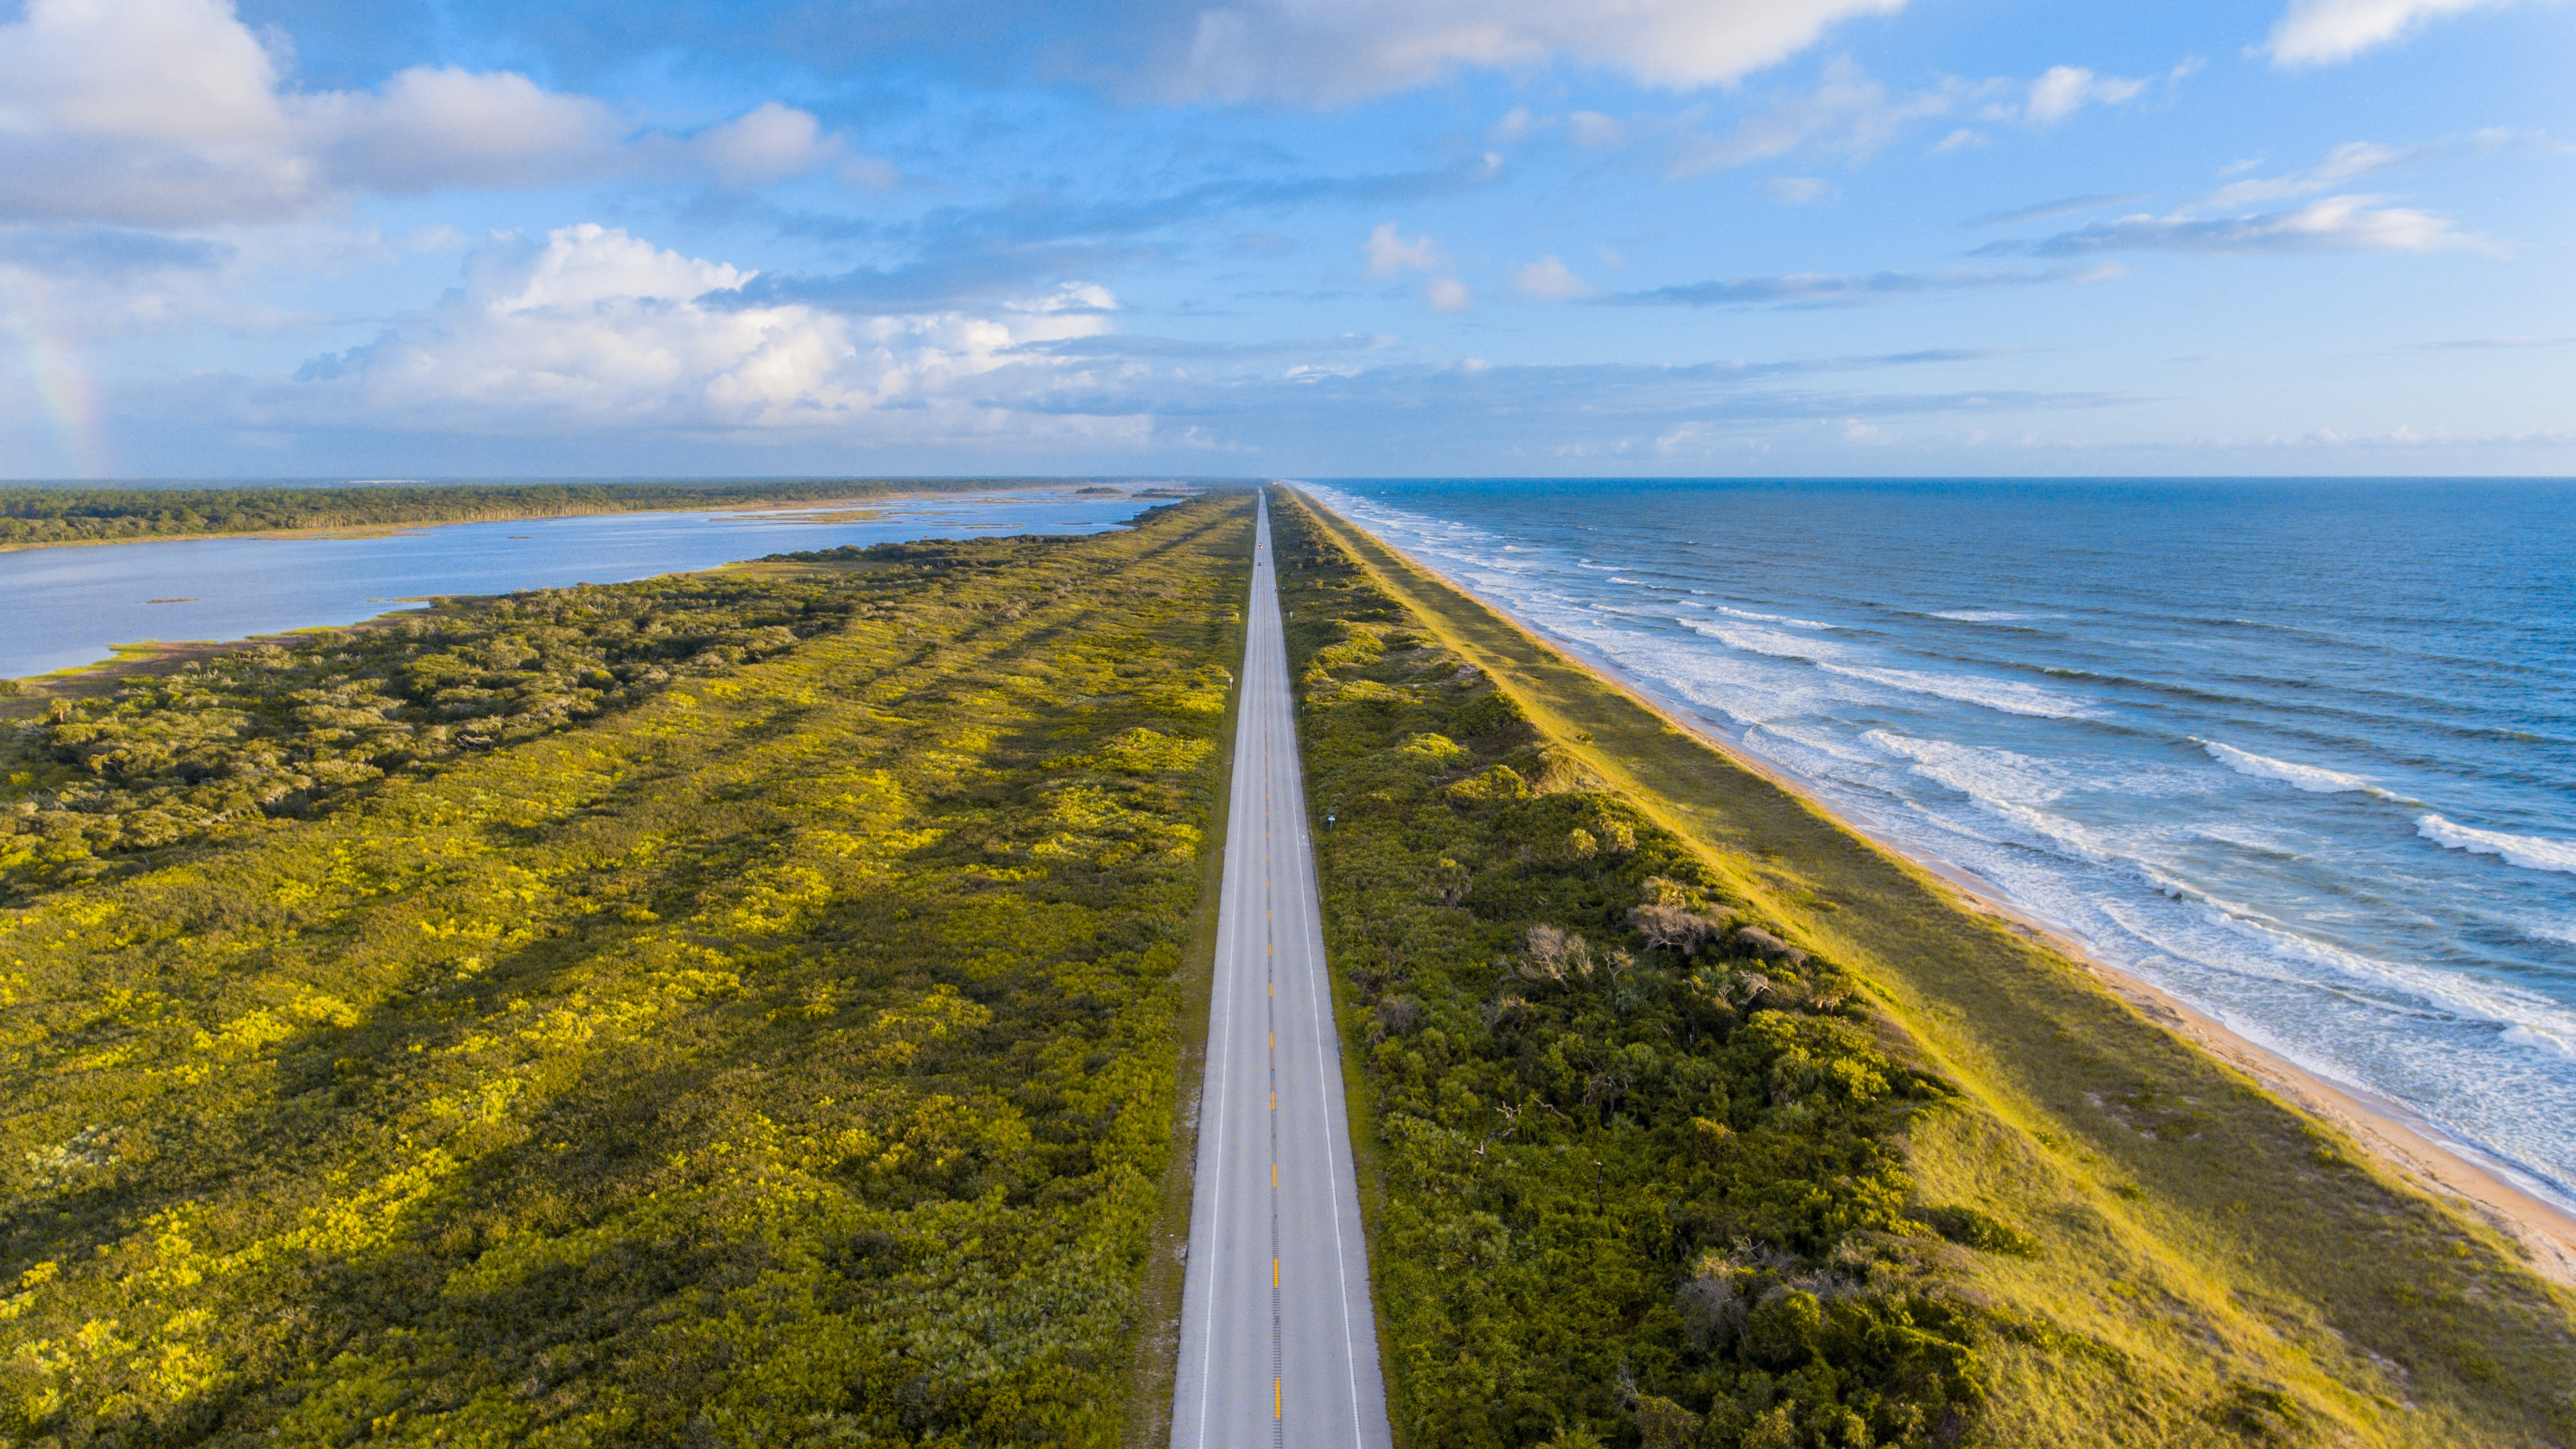 A drone shot of a long road along the seashore